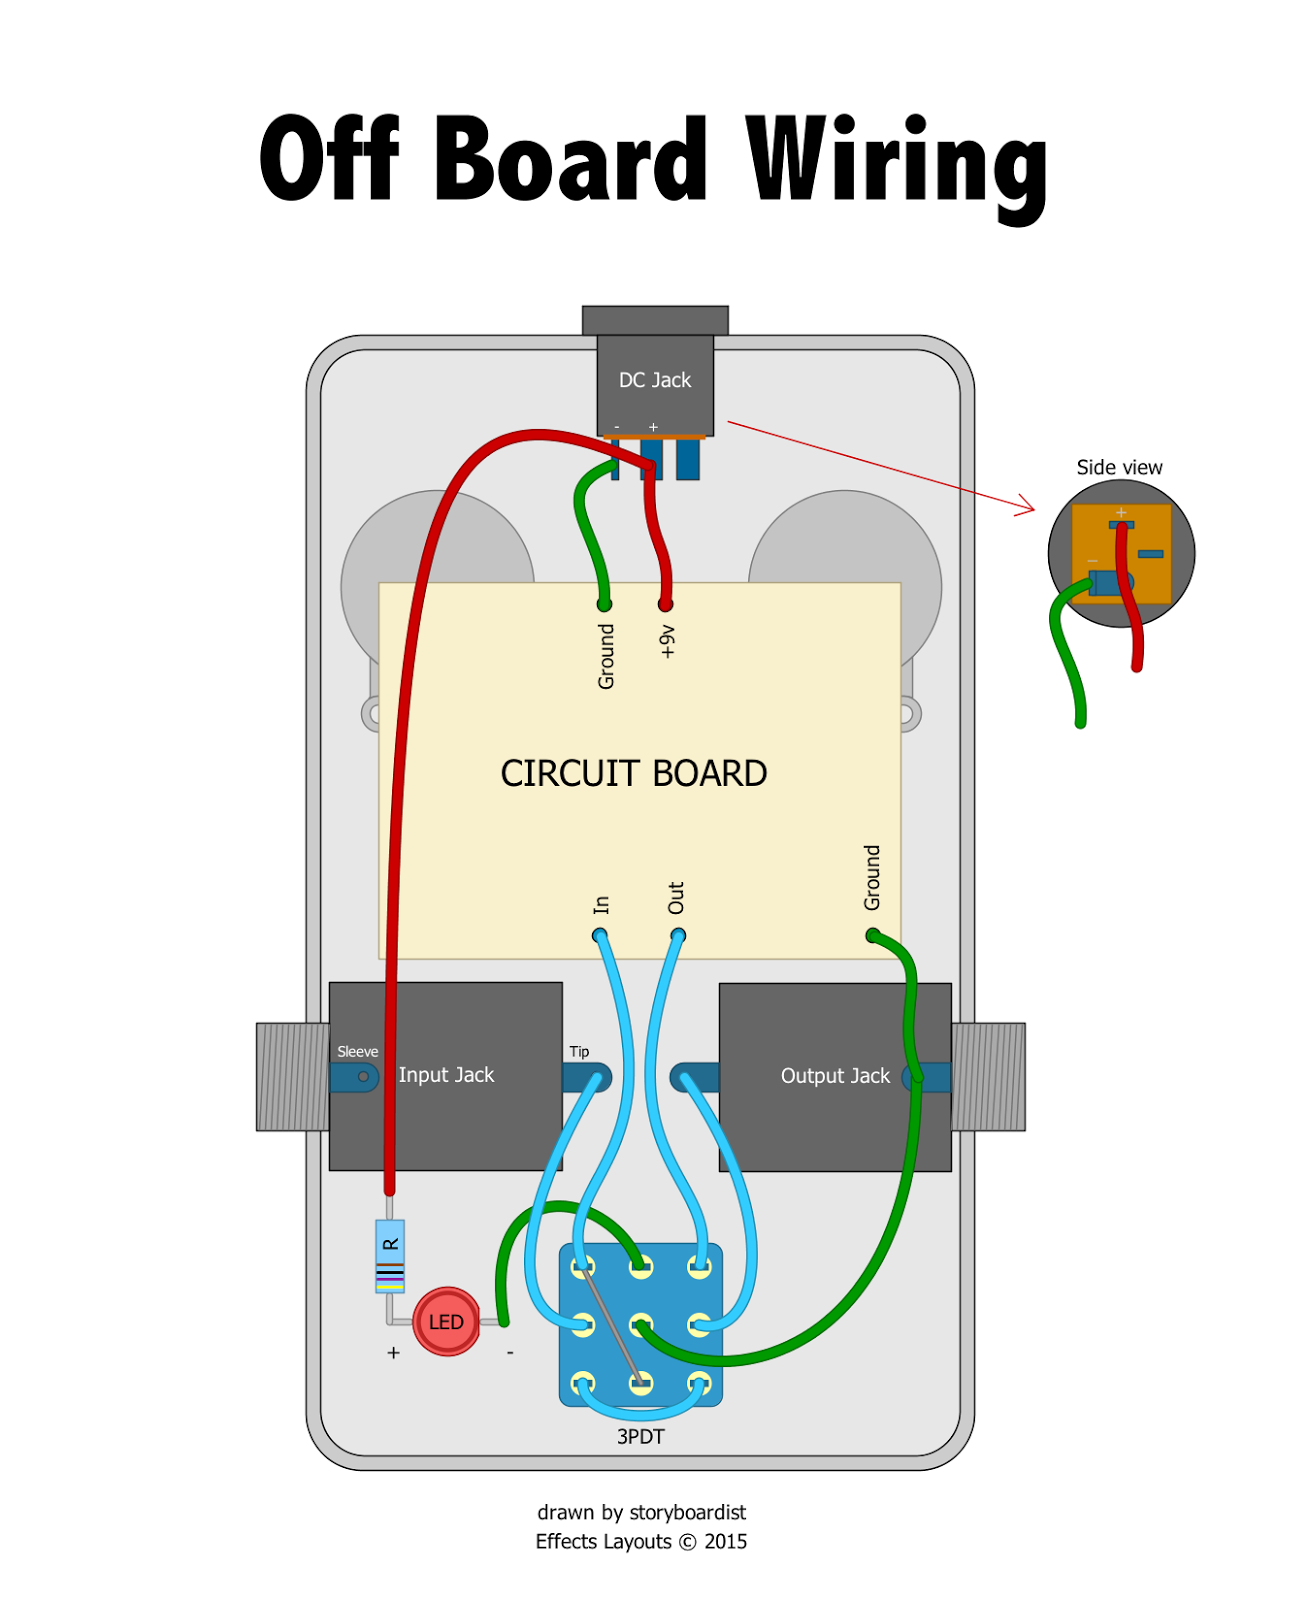 3pdt wiring pedal perf and pcb effects layouts: general layout notes 3pdt wiring 700 ha #5